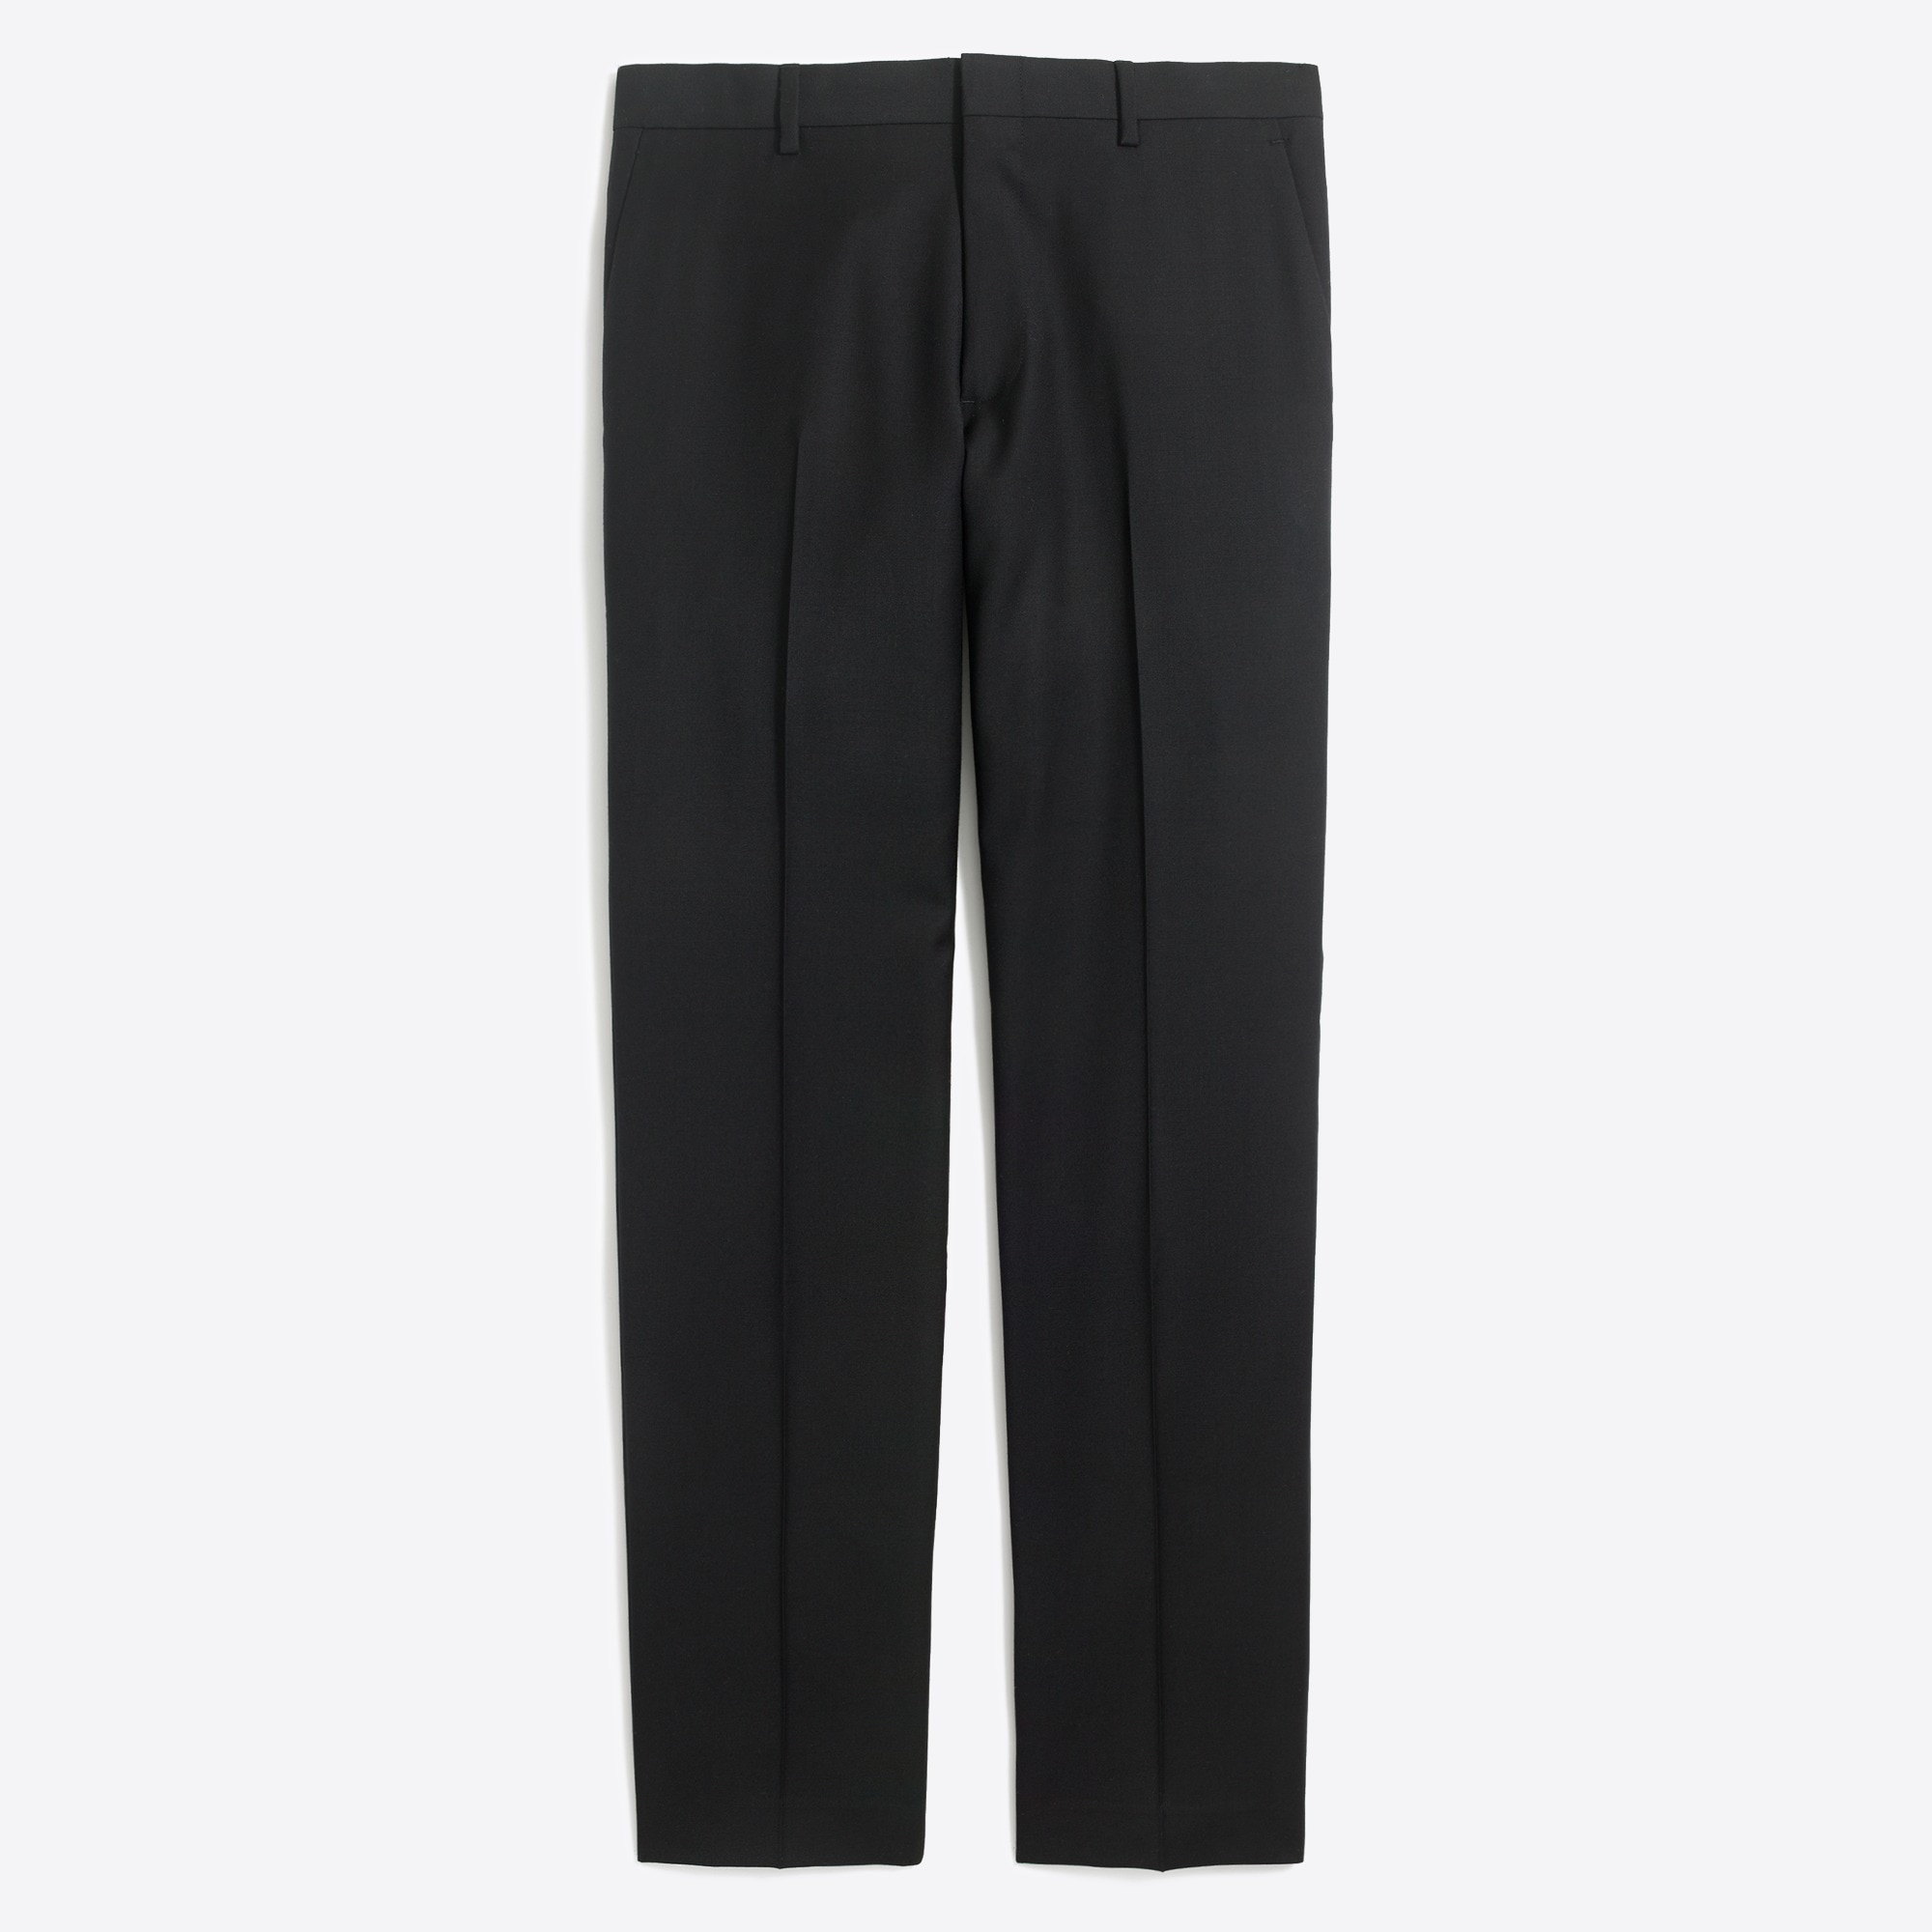 factory mens Slim Thompson suit pant in worsted wool